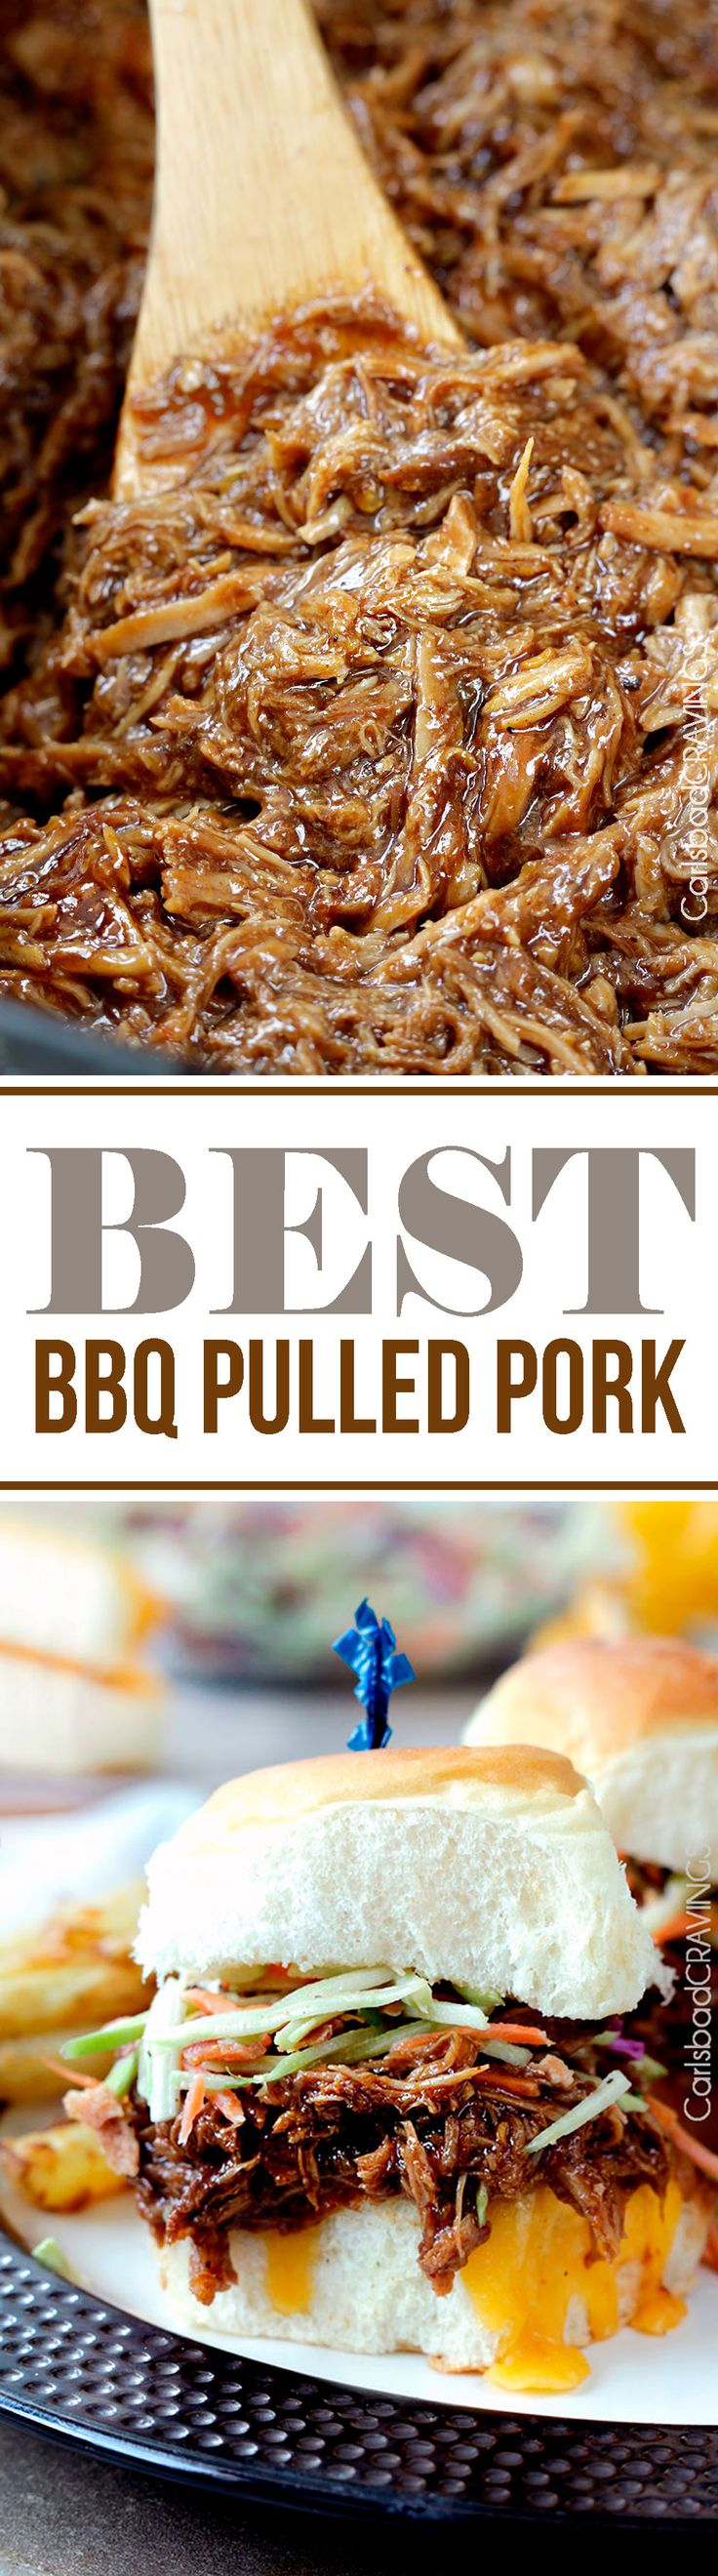 Best BBQ Pulled Pork